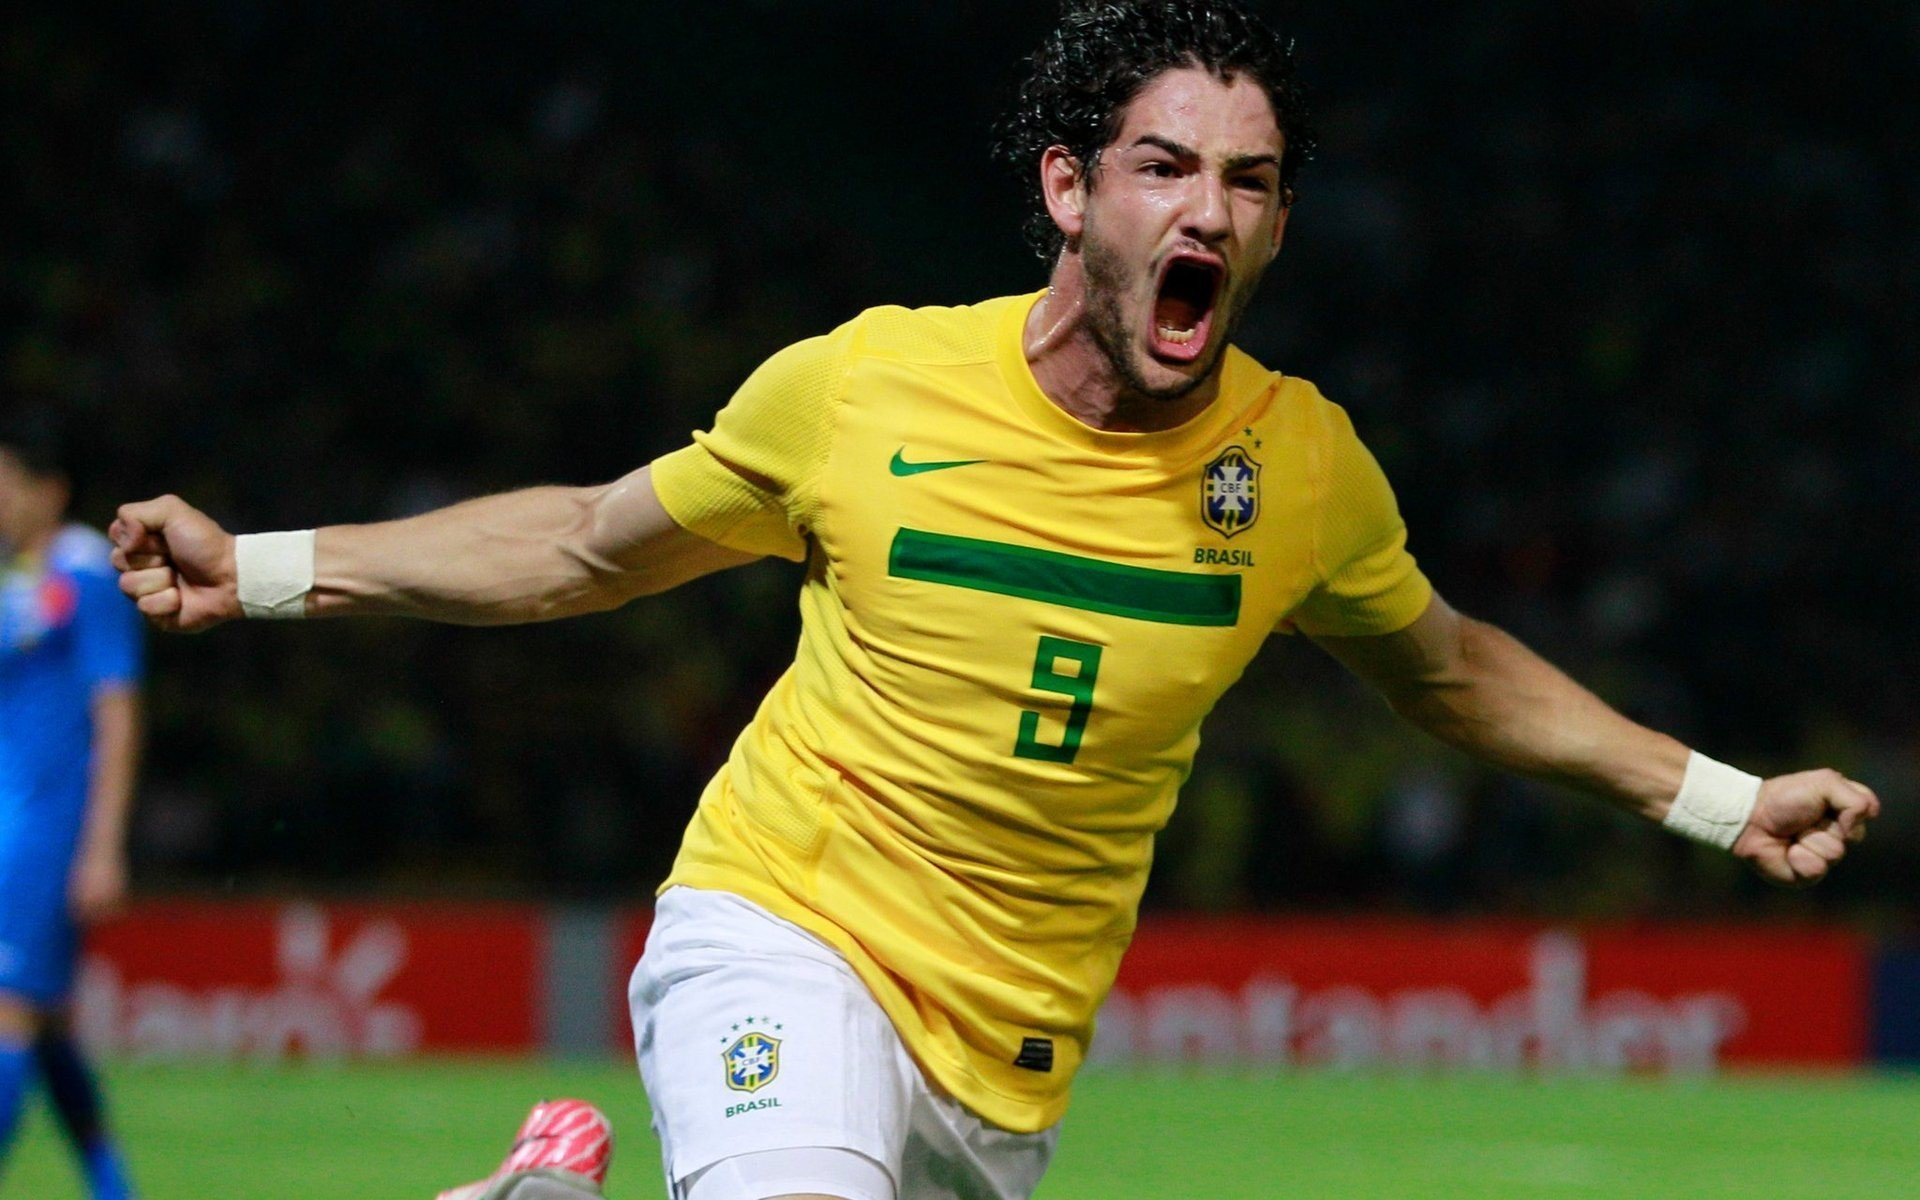 Alexandre Pato, the Brazilian soccer player, photo